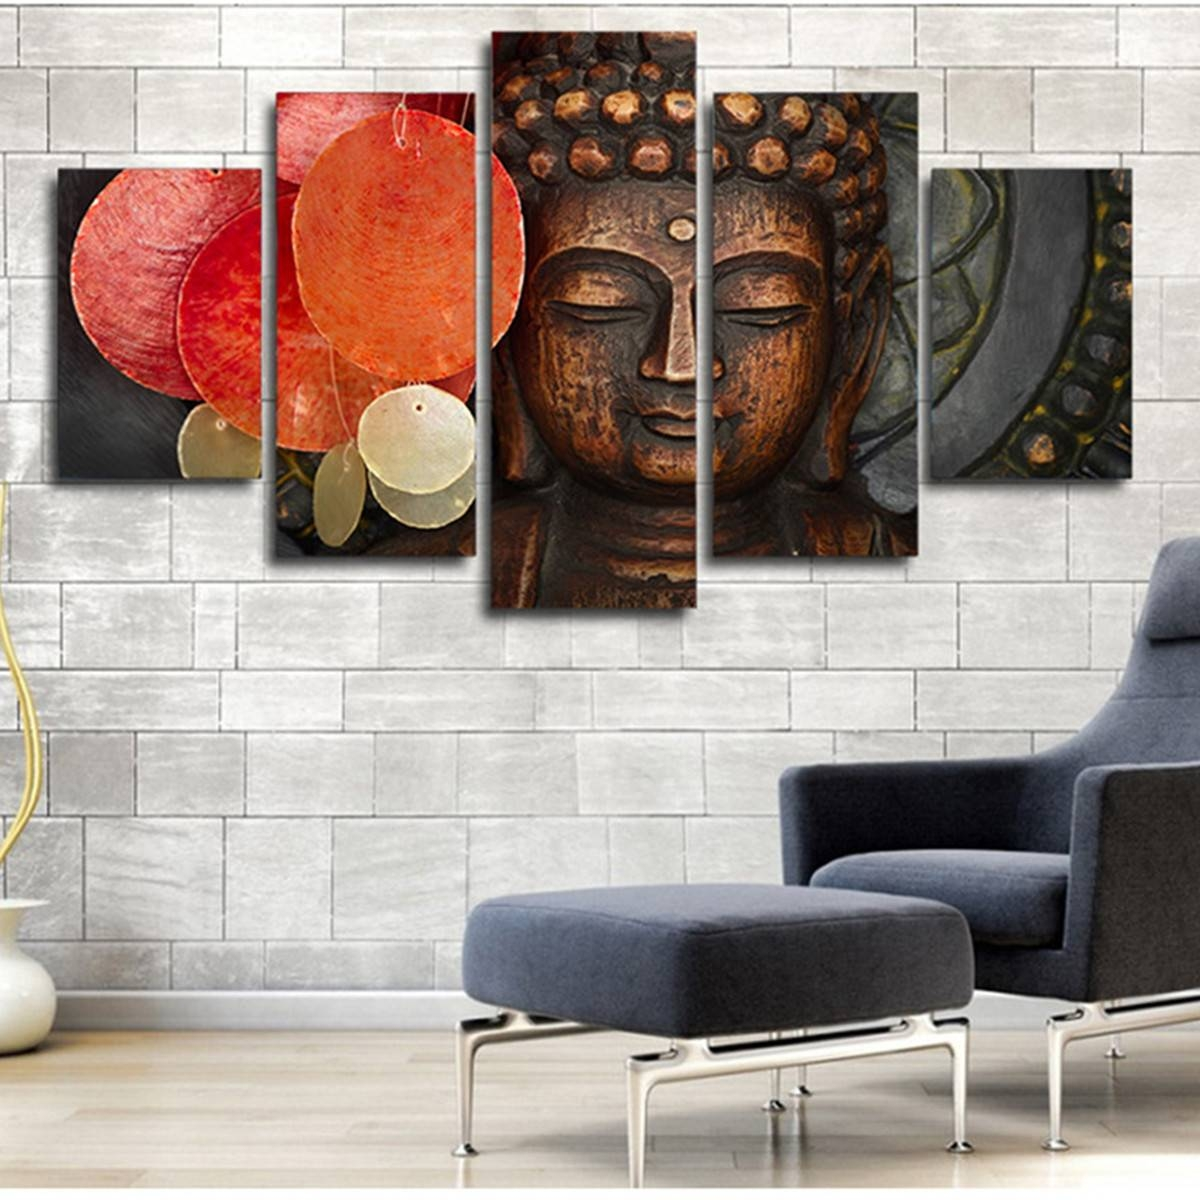 Online Buy Wholesale 3D 5 Piece Canvas Art From China 3D 5 Piece With Regard To Most Recently Released 3D Buddha Wall Art (Gallery 11 of 20)